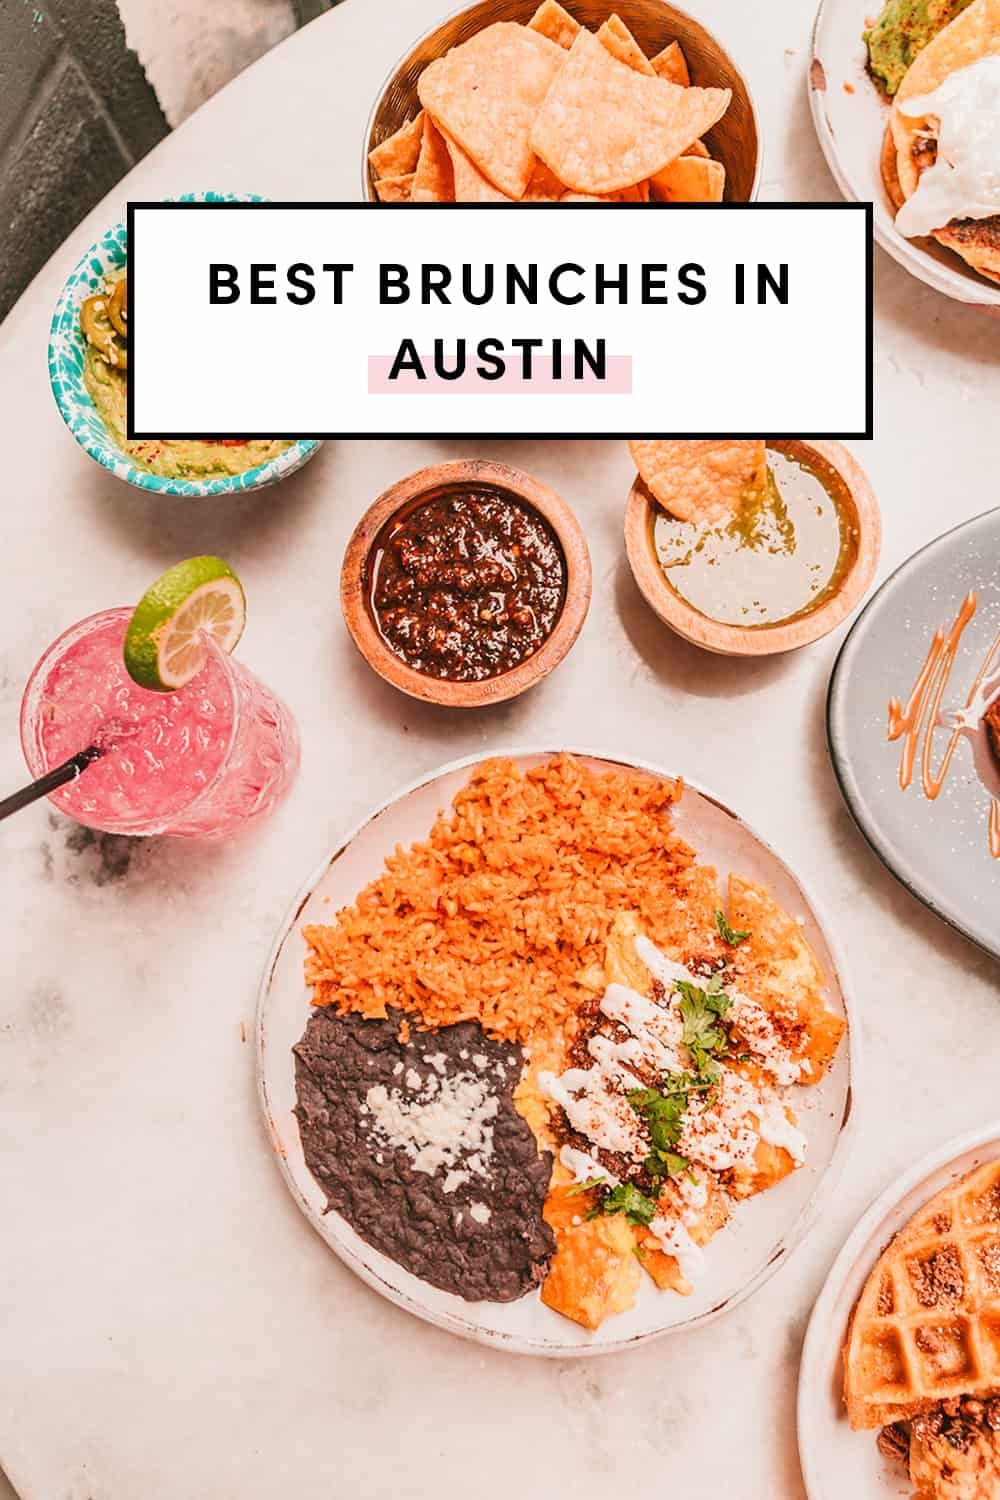 24 Spots With The Best Brunch In Austin Updated 2020 In 2020 Austin Brunch Brunch Restaurants Brunch